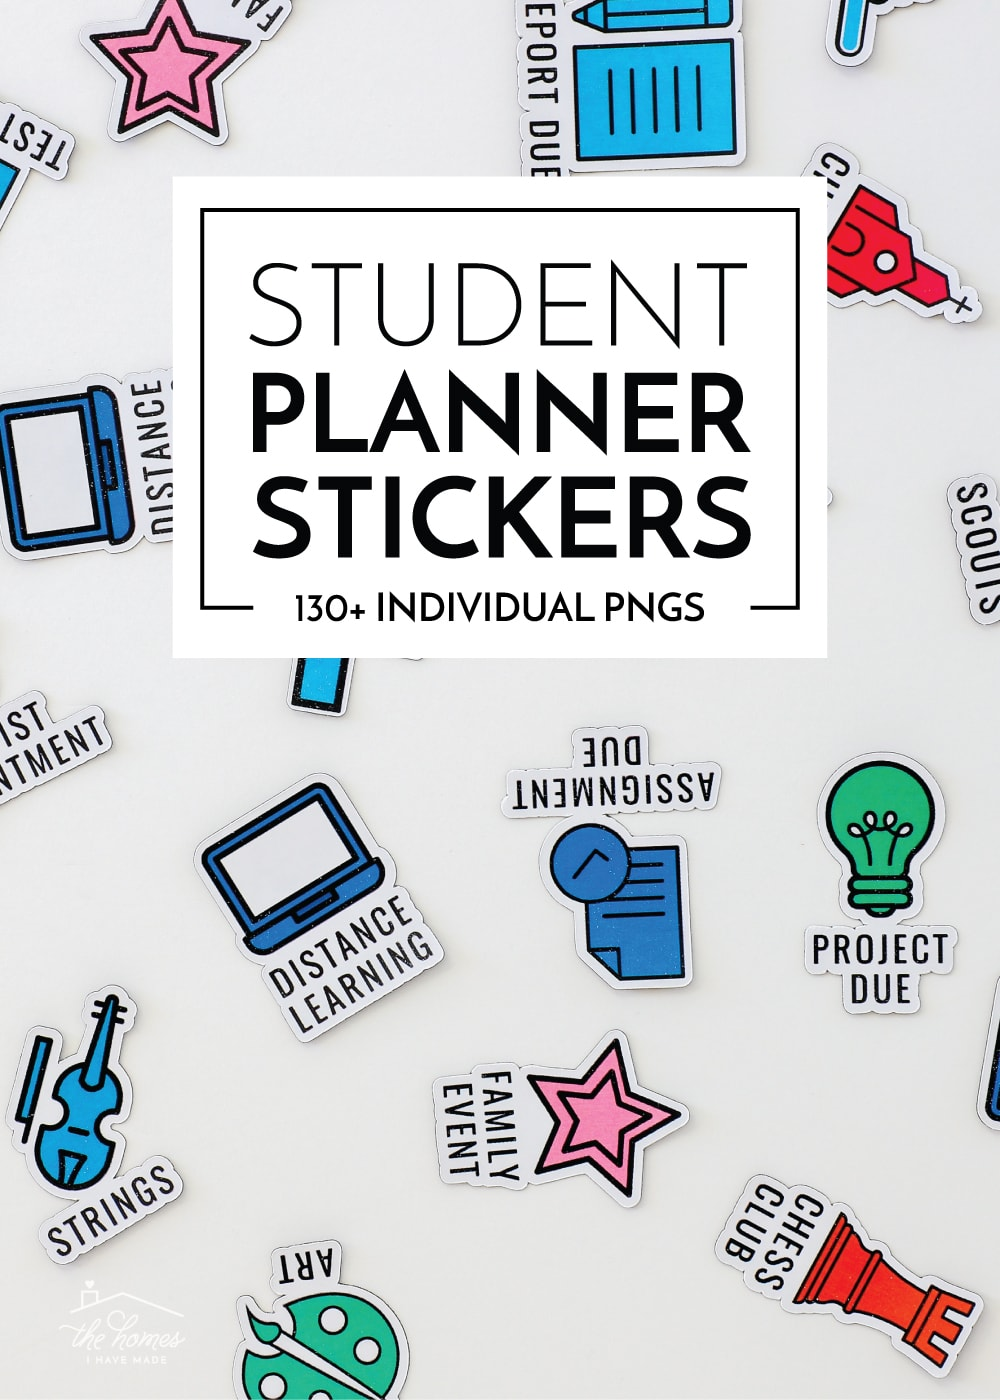 Student Planner Stickers